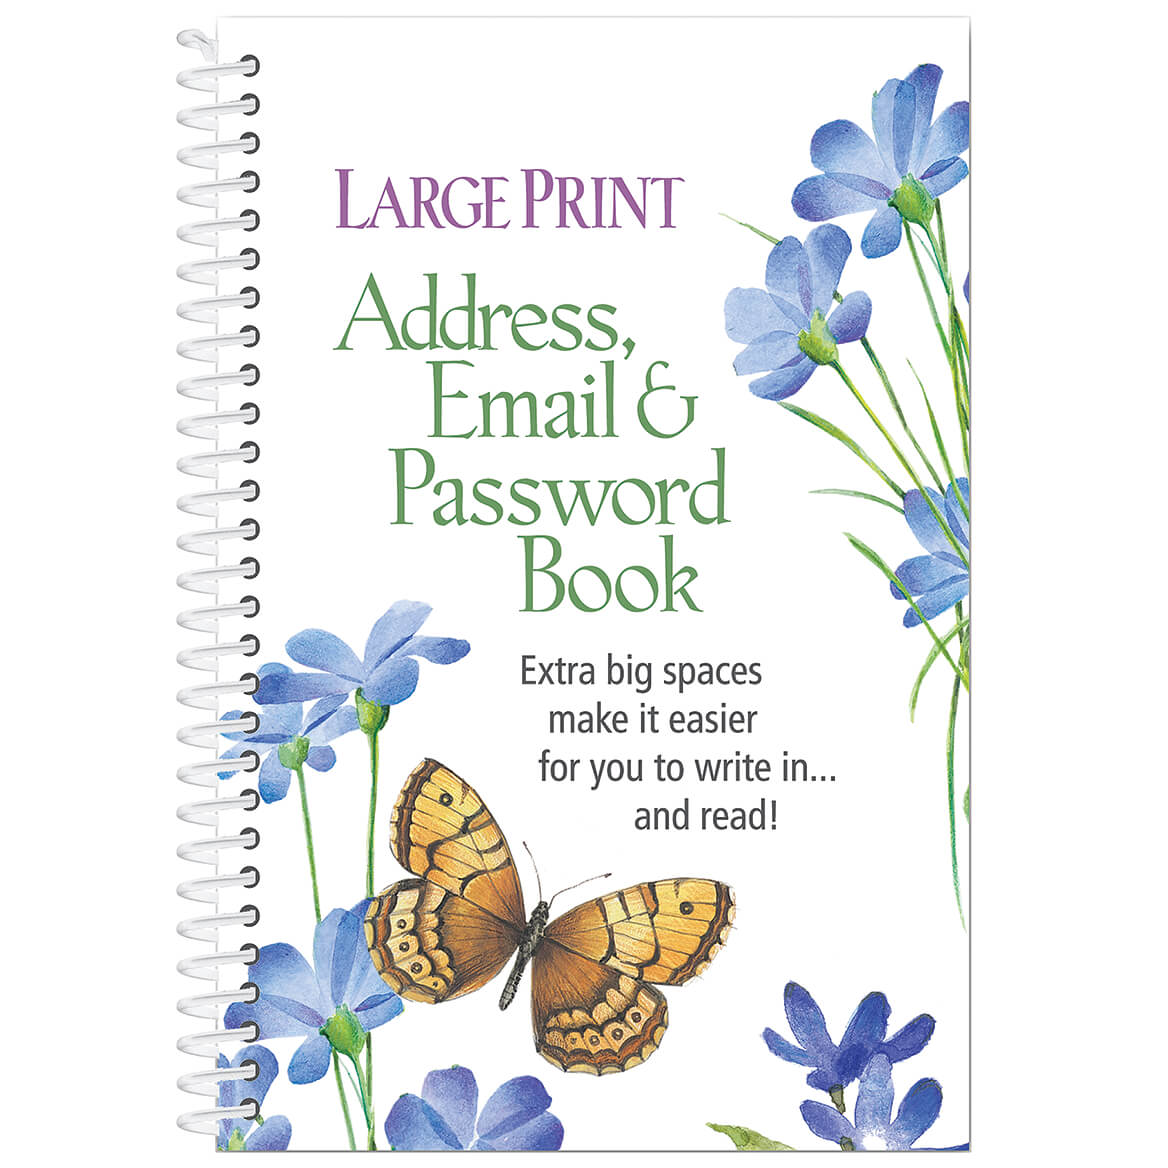 Large Print Address, Email & Password Book-352395